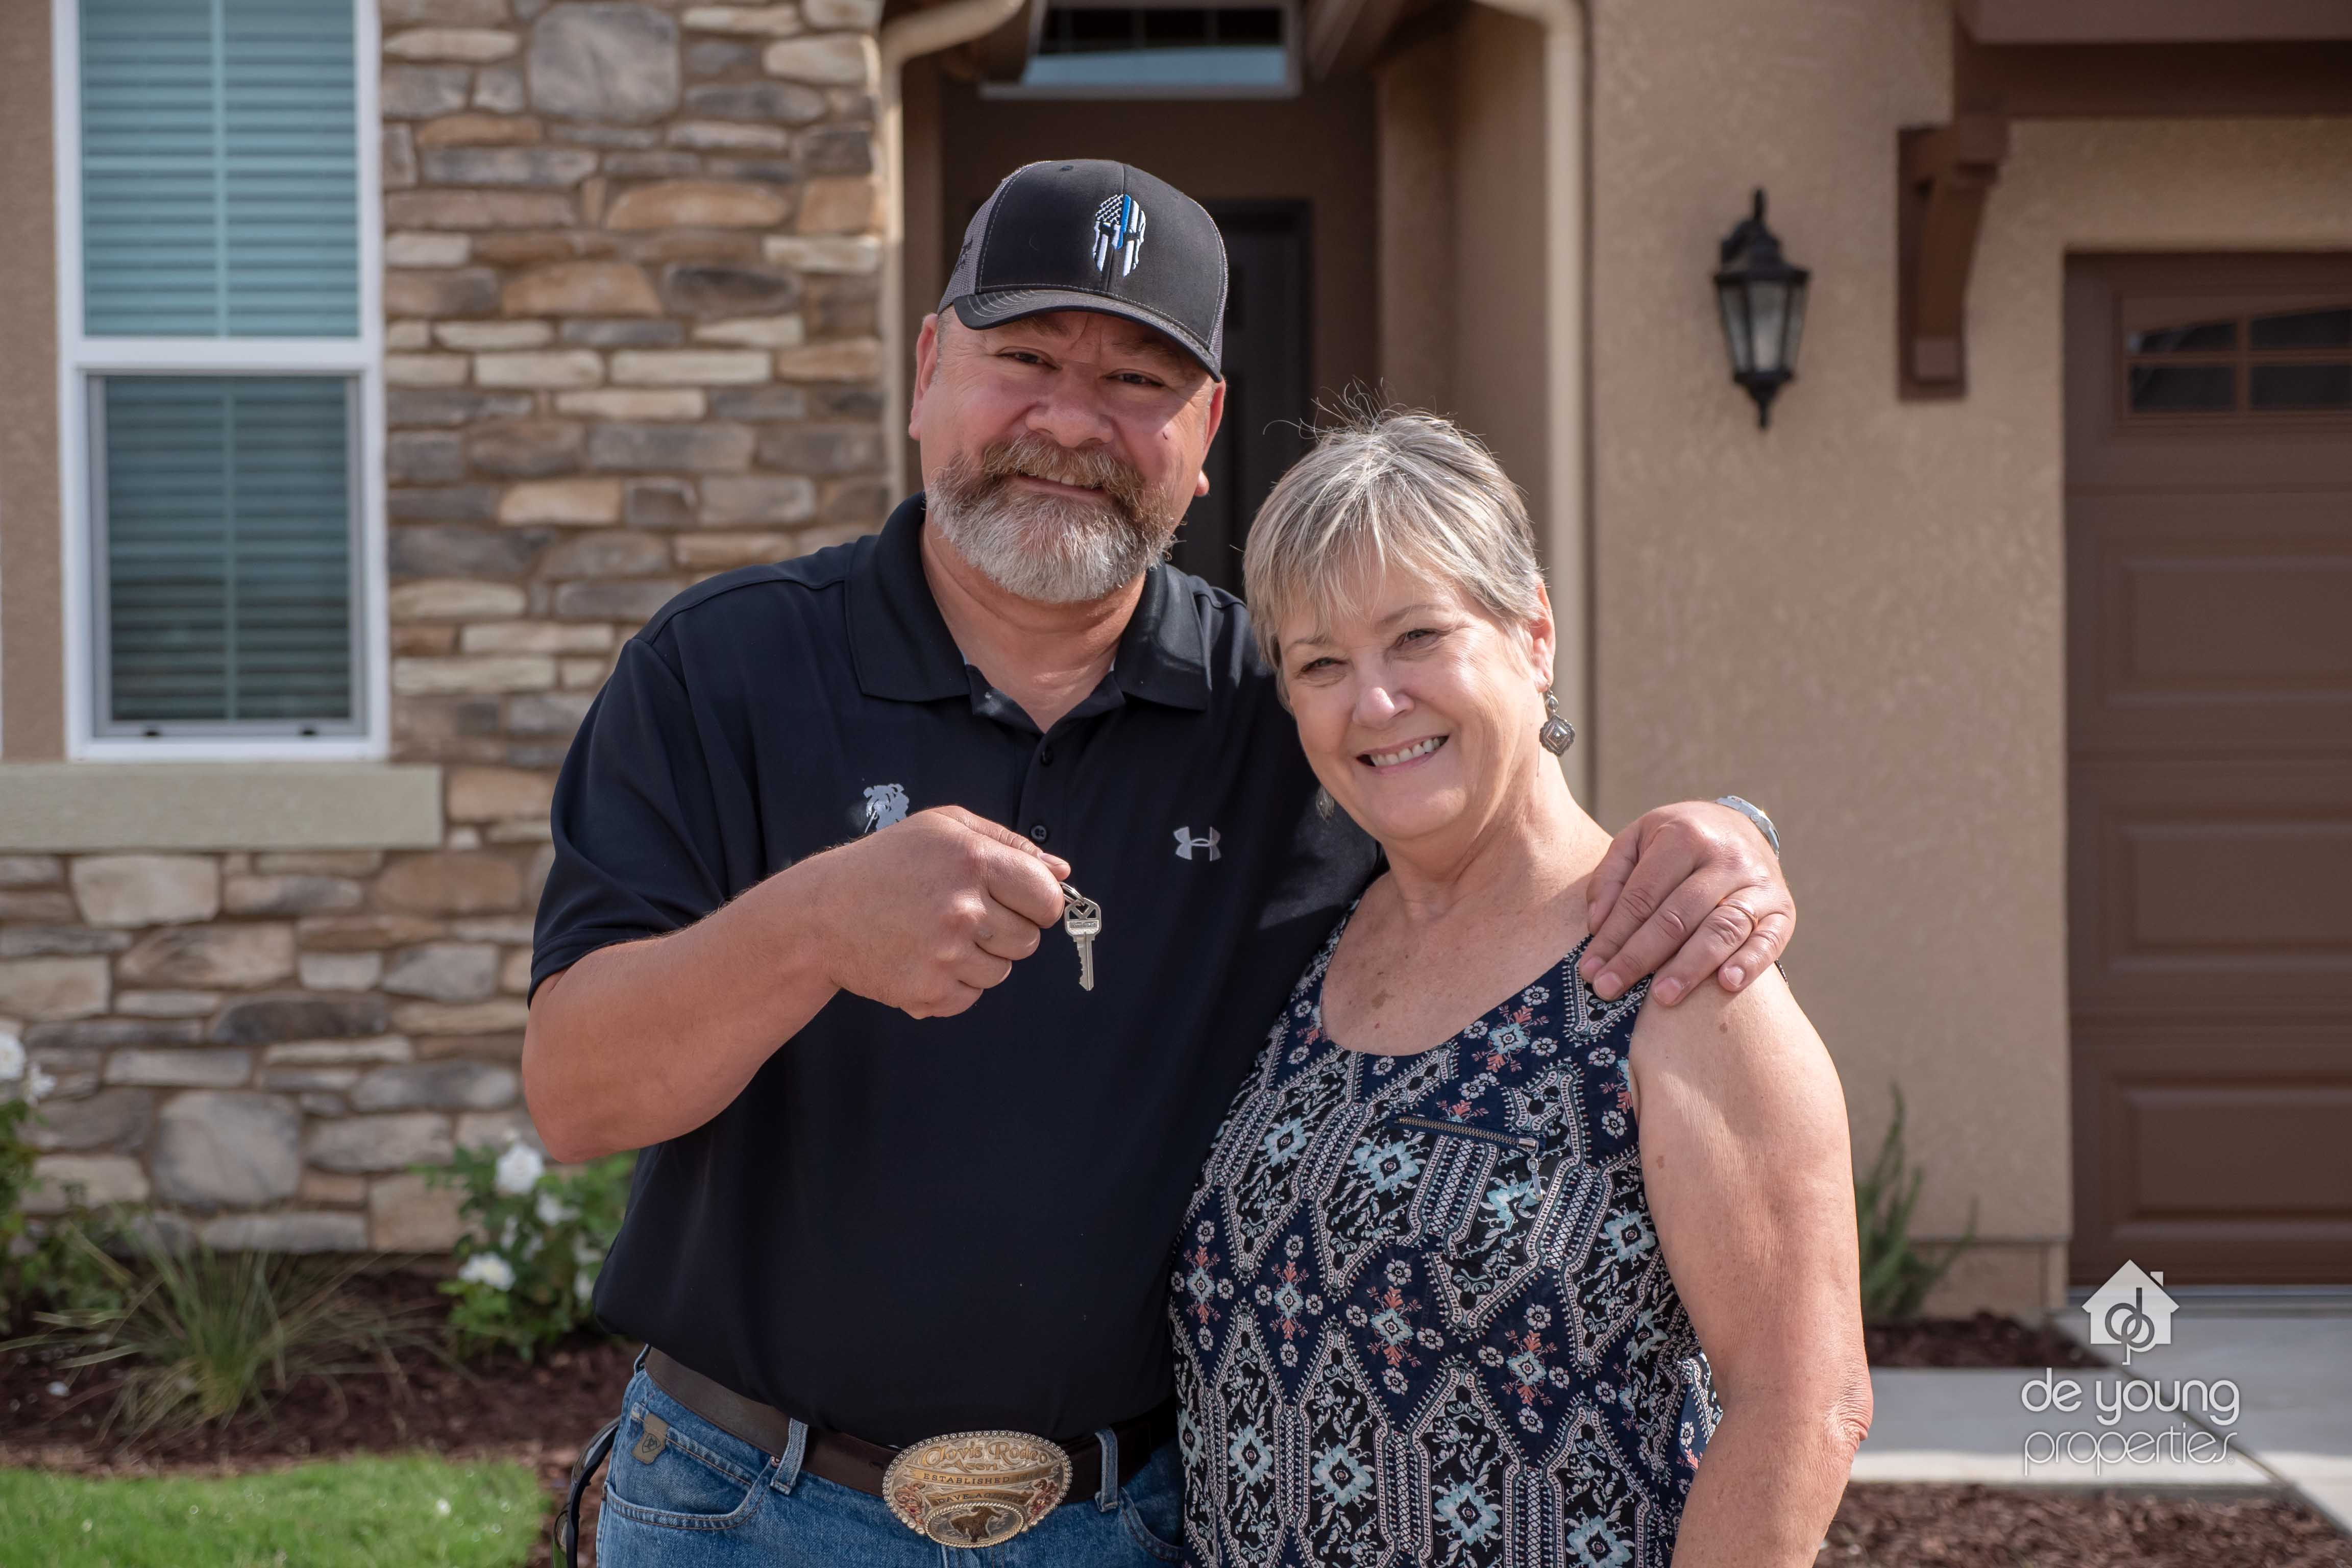 Veteran's Day Profile: Veteran Homeowner works with DeYoung Properties and their Heroes Program to Make His Dreams Come True!